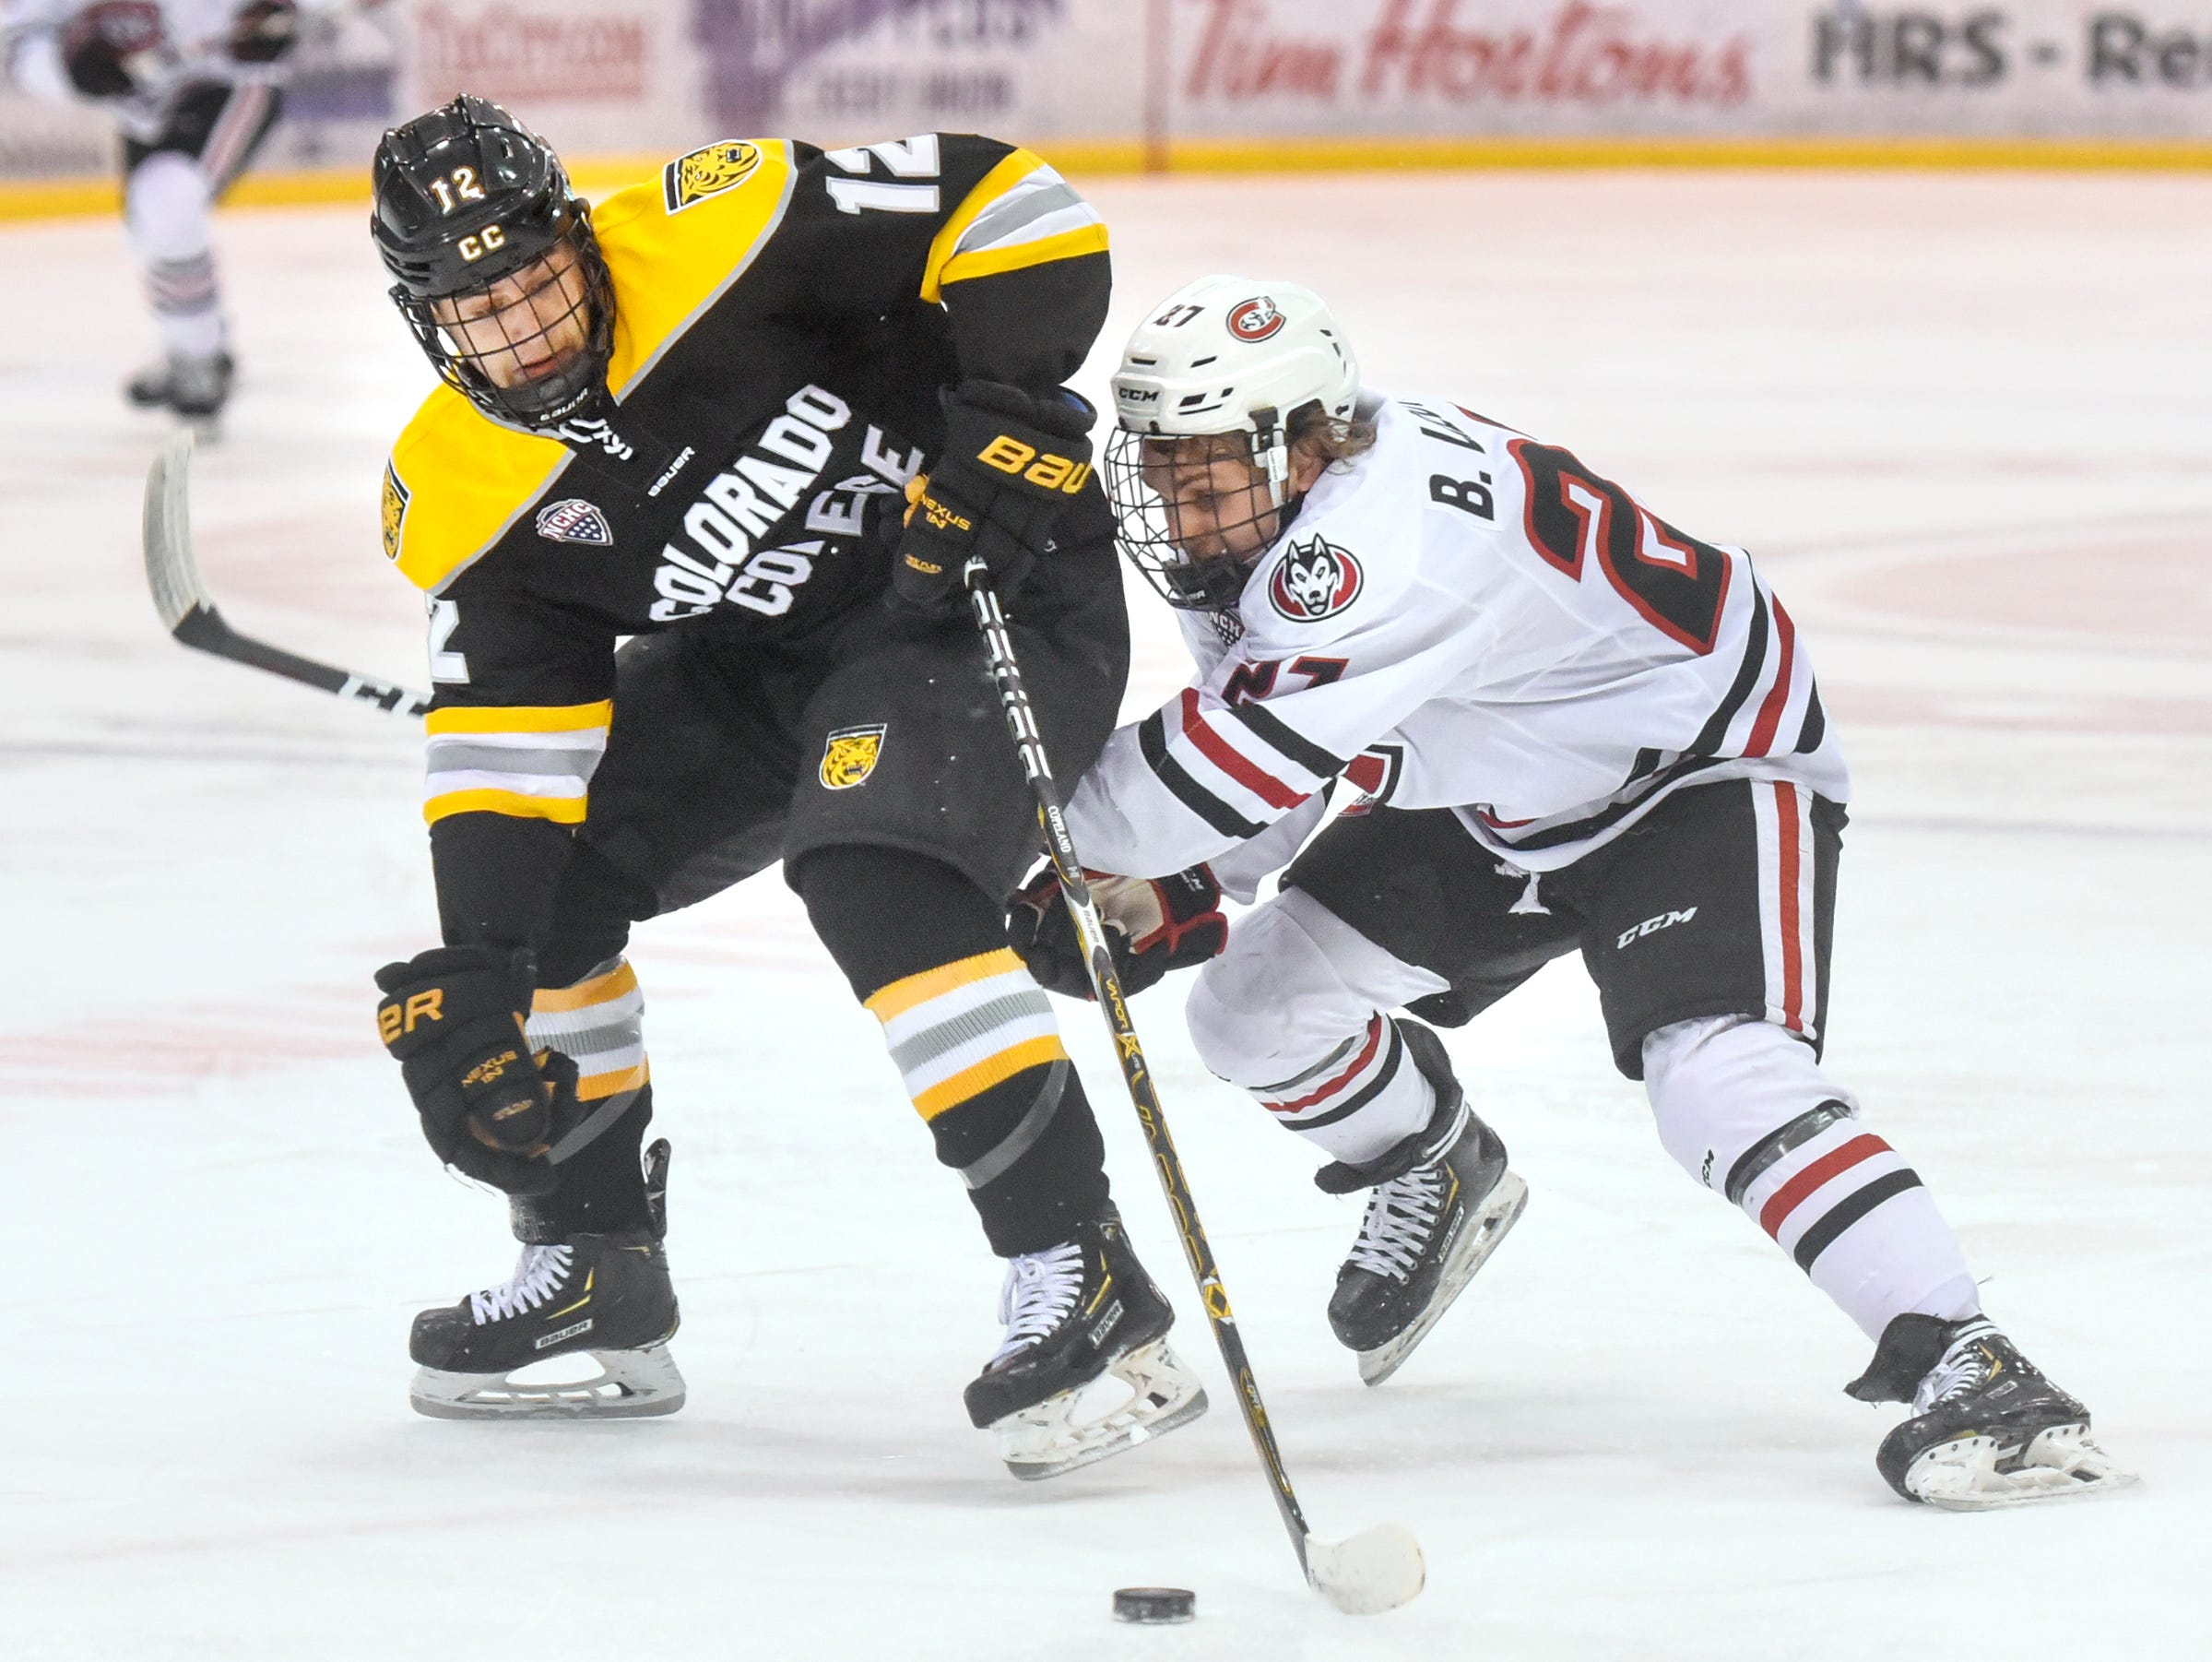 St. Cloud State's Blake Lizotte and Ben Copeland of Colorado College battle for control of the puck during the first period of the Friday, Feb. 8, game at the Herb Brooks National Hockey Center in St. Cloud.